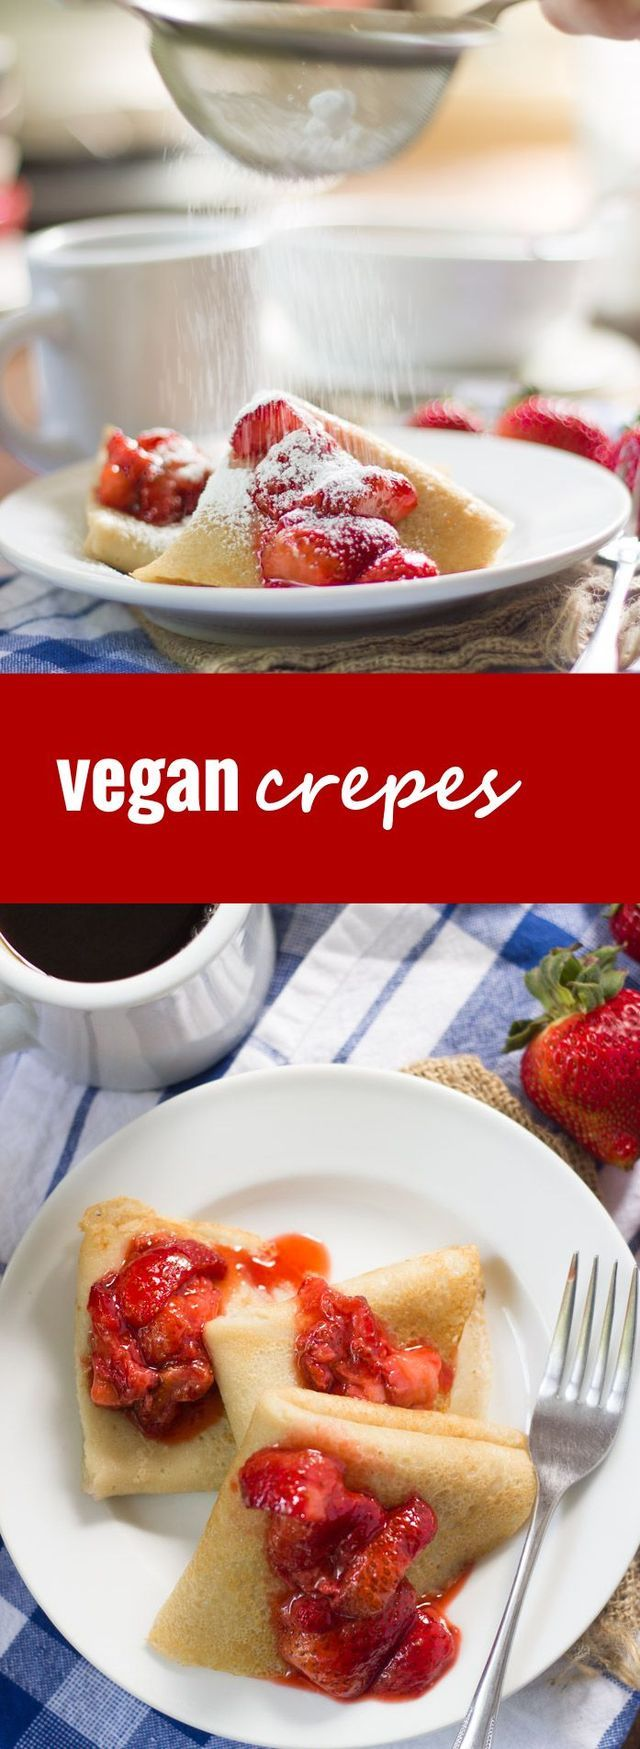 Whisk, pour and swirl! These vegan crepes are super easy to make, and can be eaten as part of a sweet breakfast or stuffed with savory fillings for an elegant dinner. I know, fancy, right? Yes but no